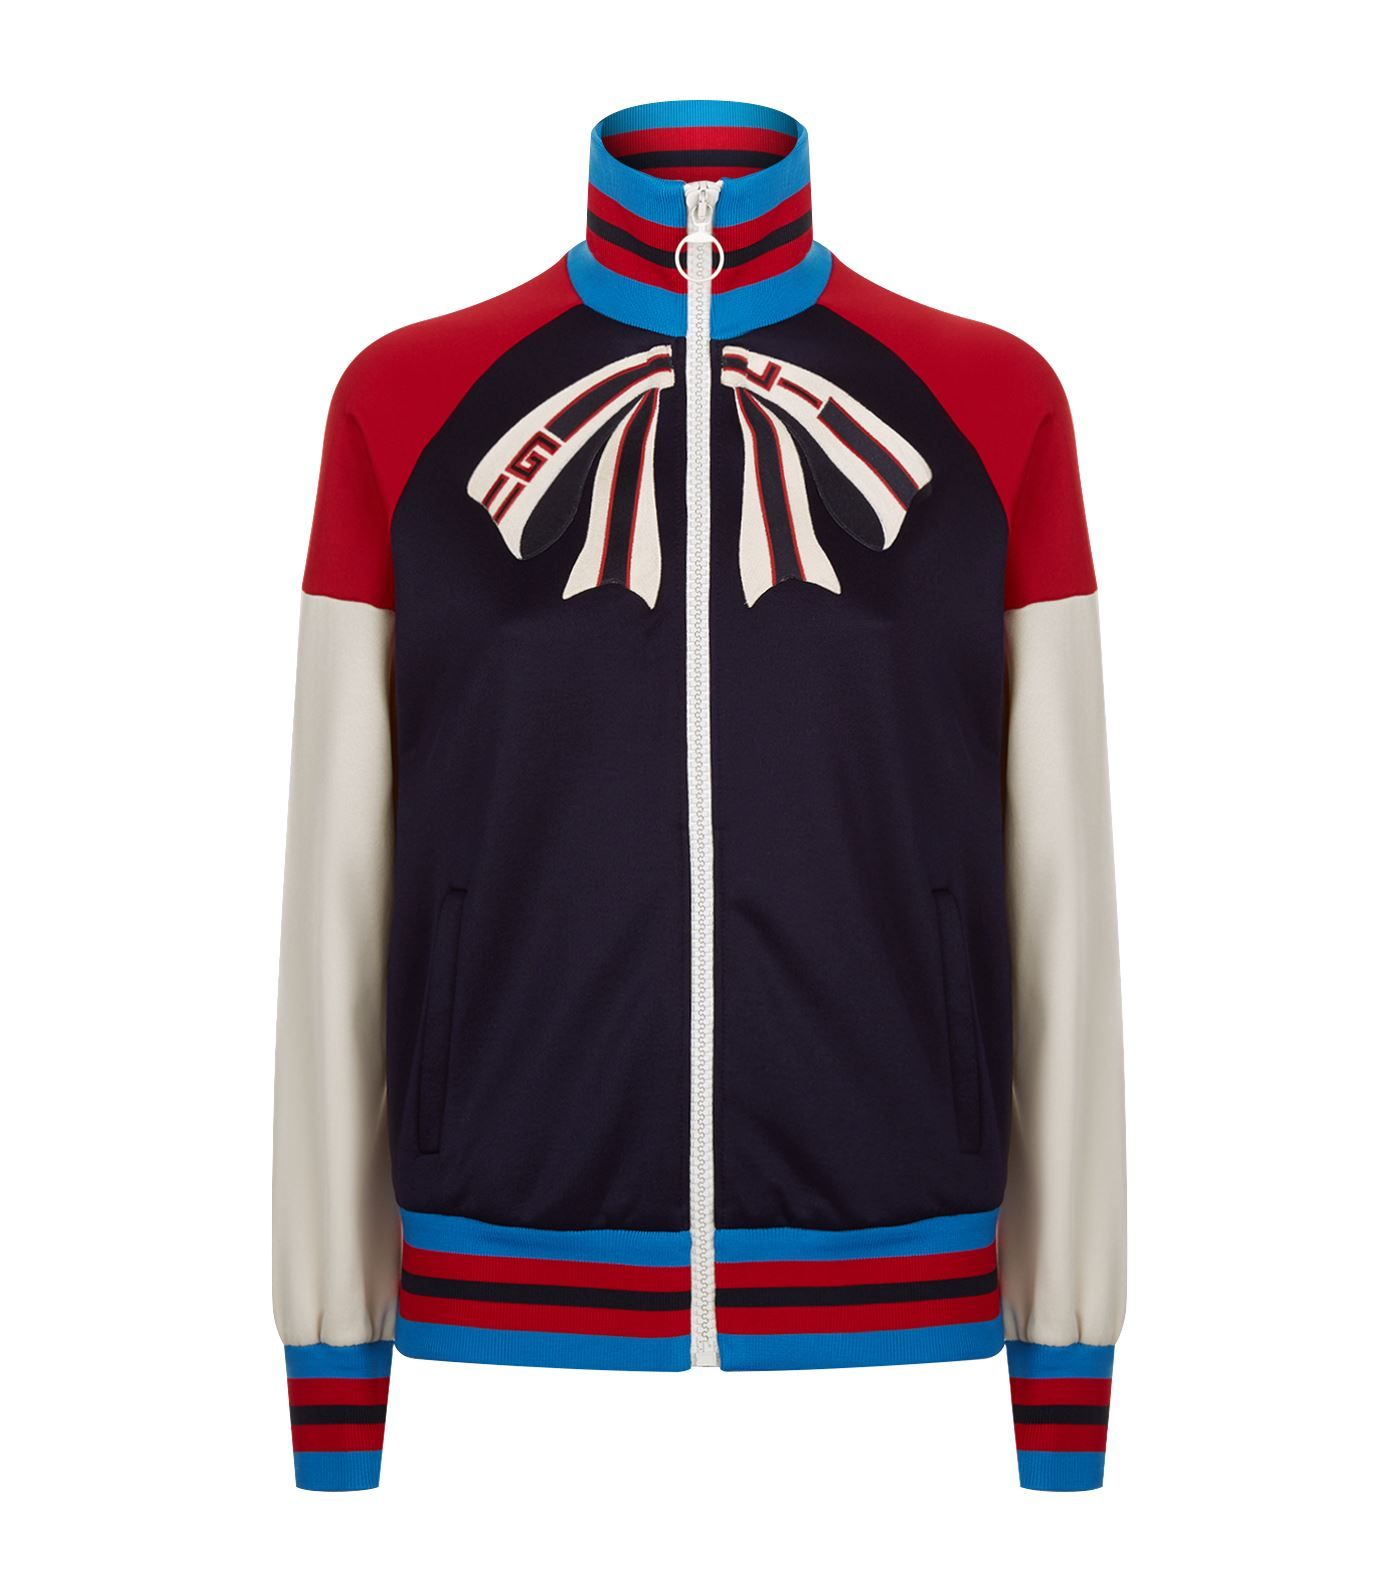 6254ca245db Shop the Gucci Guccify Yourself Track Jacket at Harrods. Shop online at  harrods.com   earn reward points.